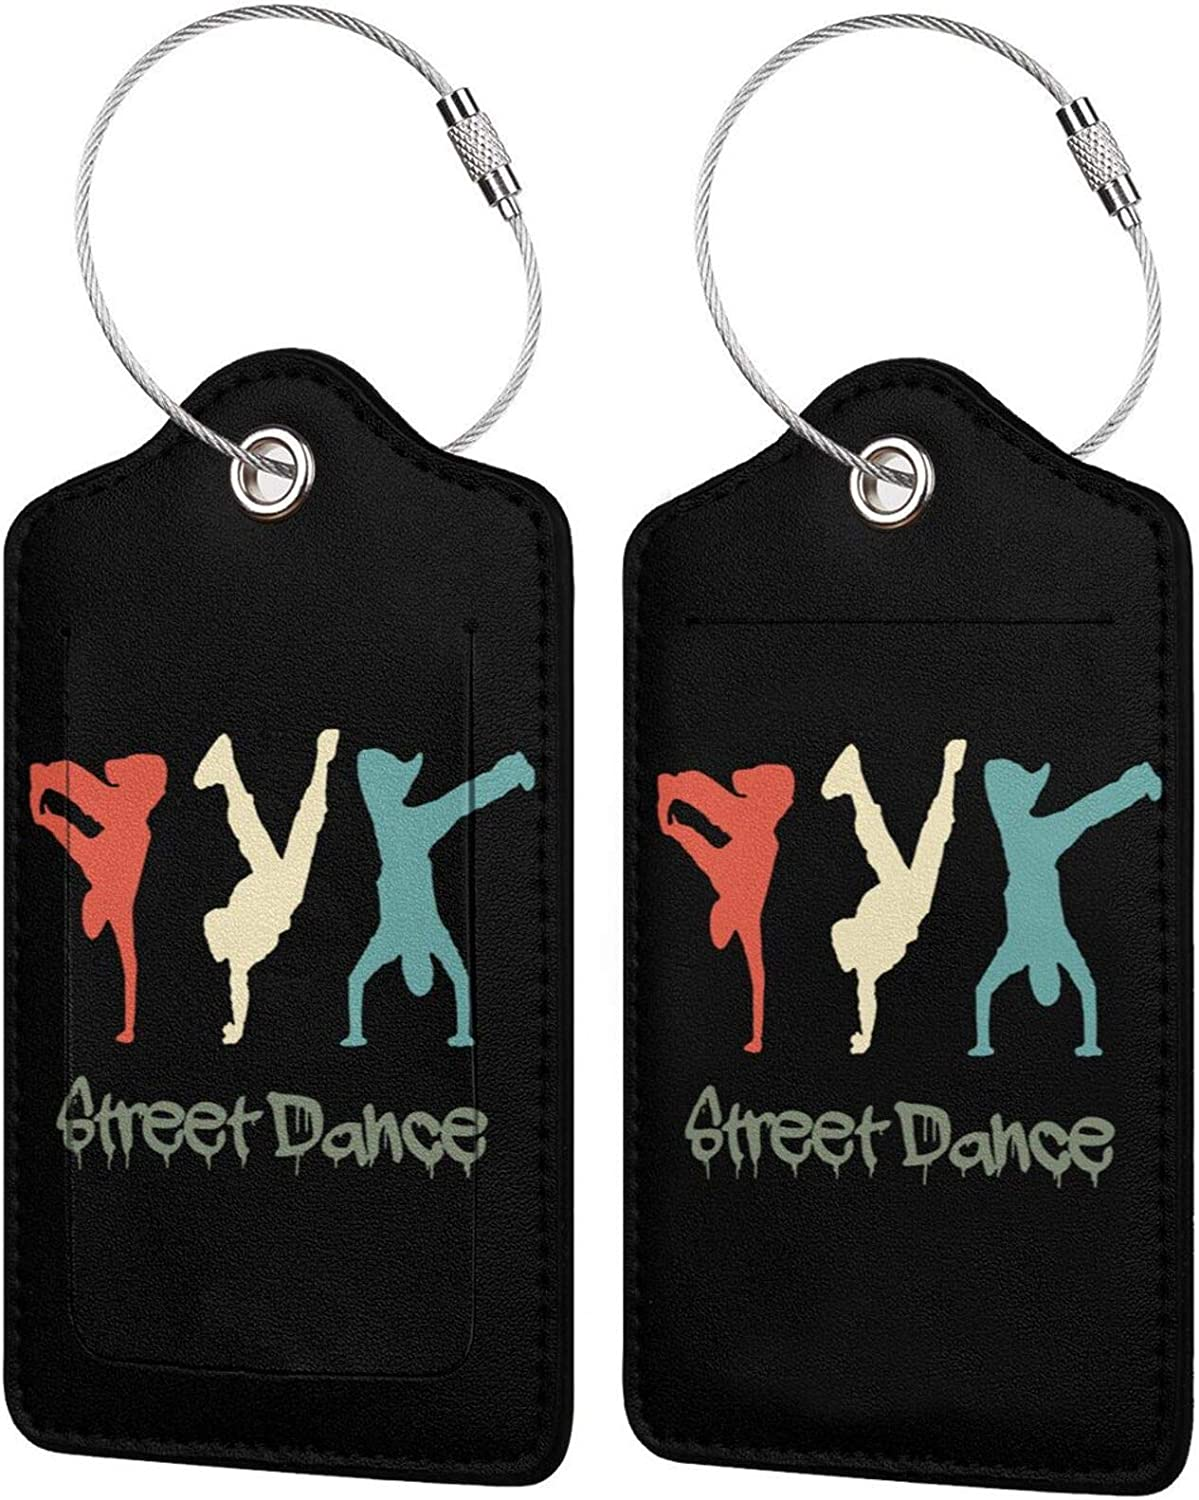 We OFFer at cheap prices Street Dance Shirt Breakdancing PU Leather Luggage Baggage Bag Ranking TOP20 T